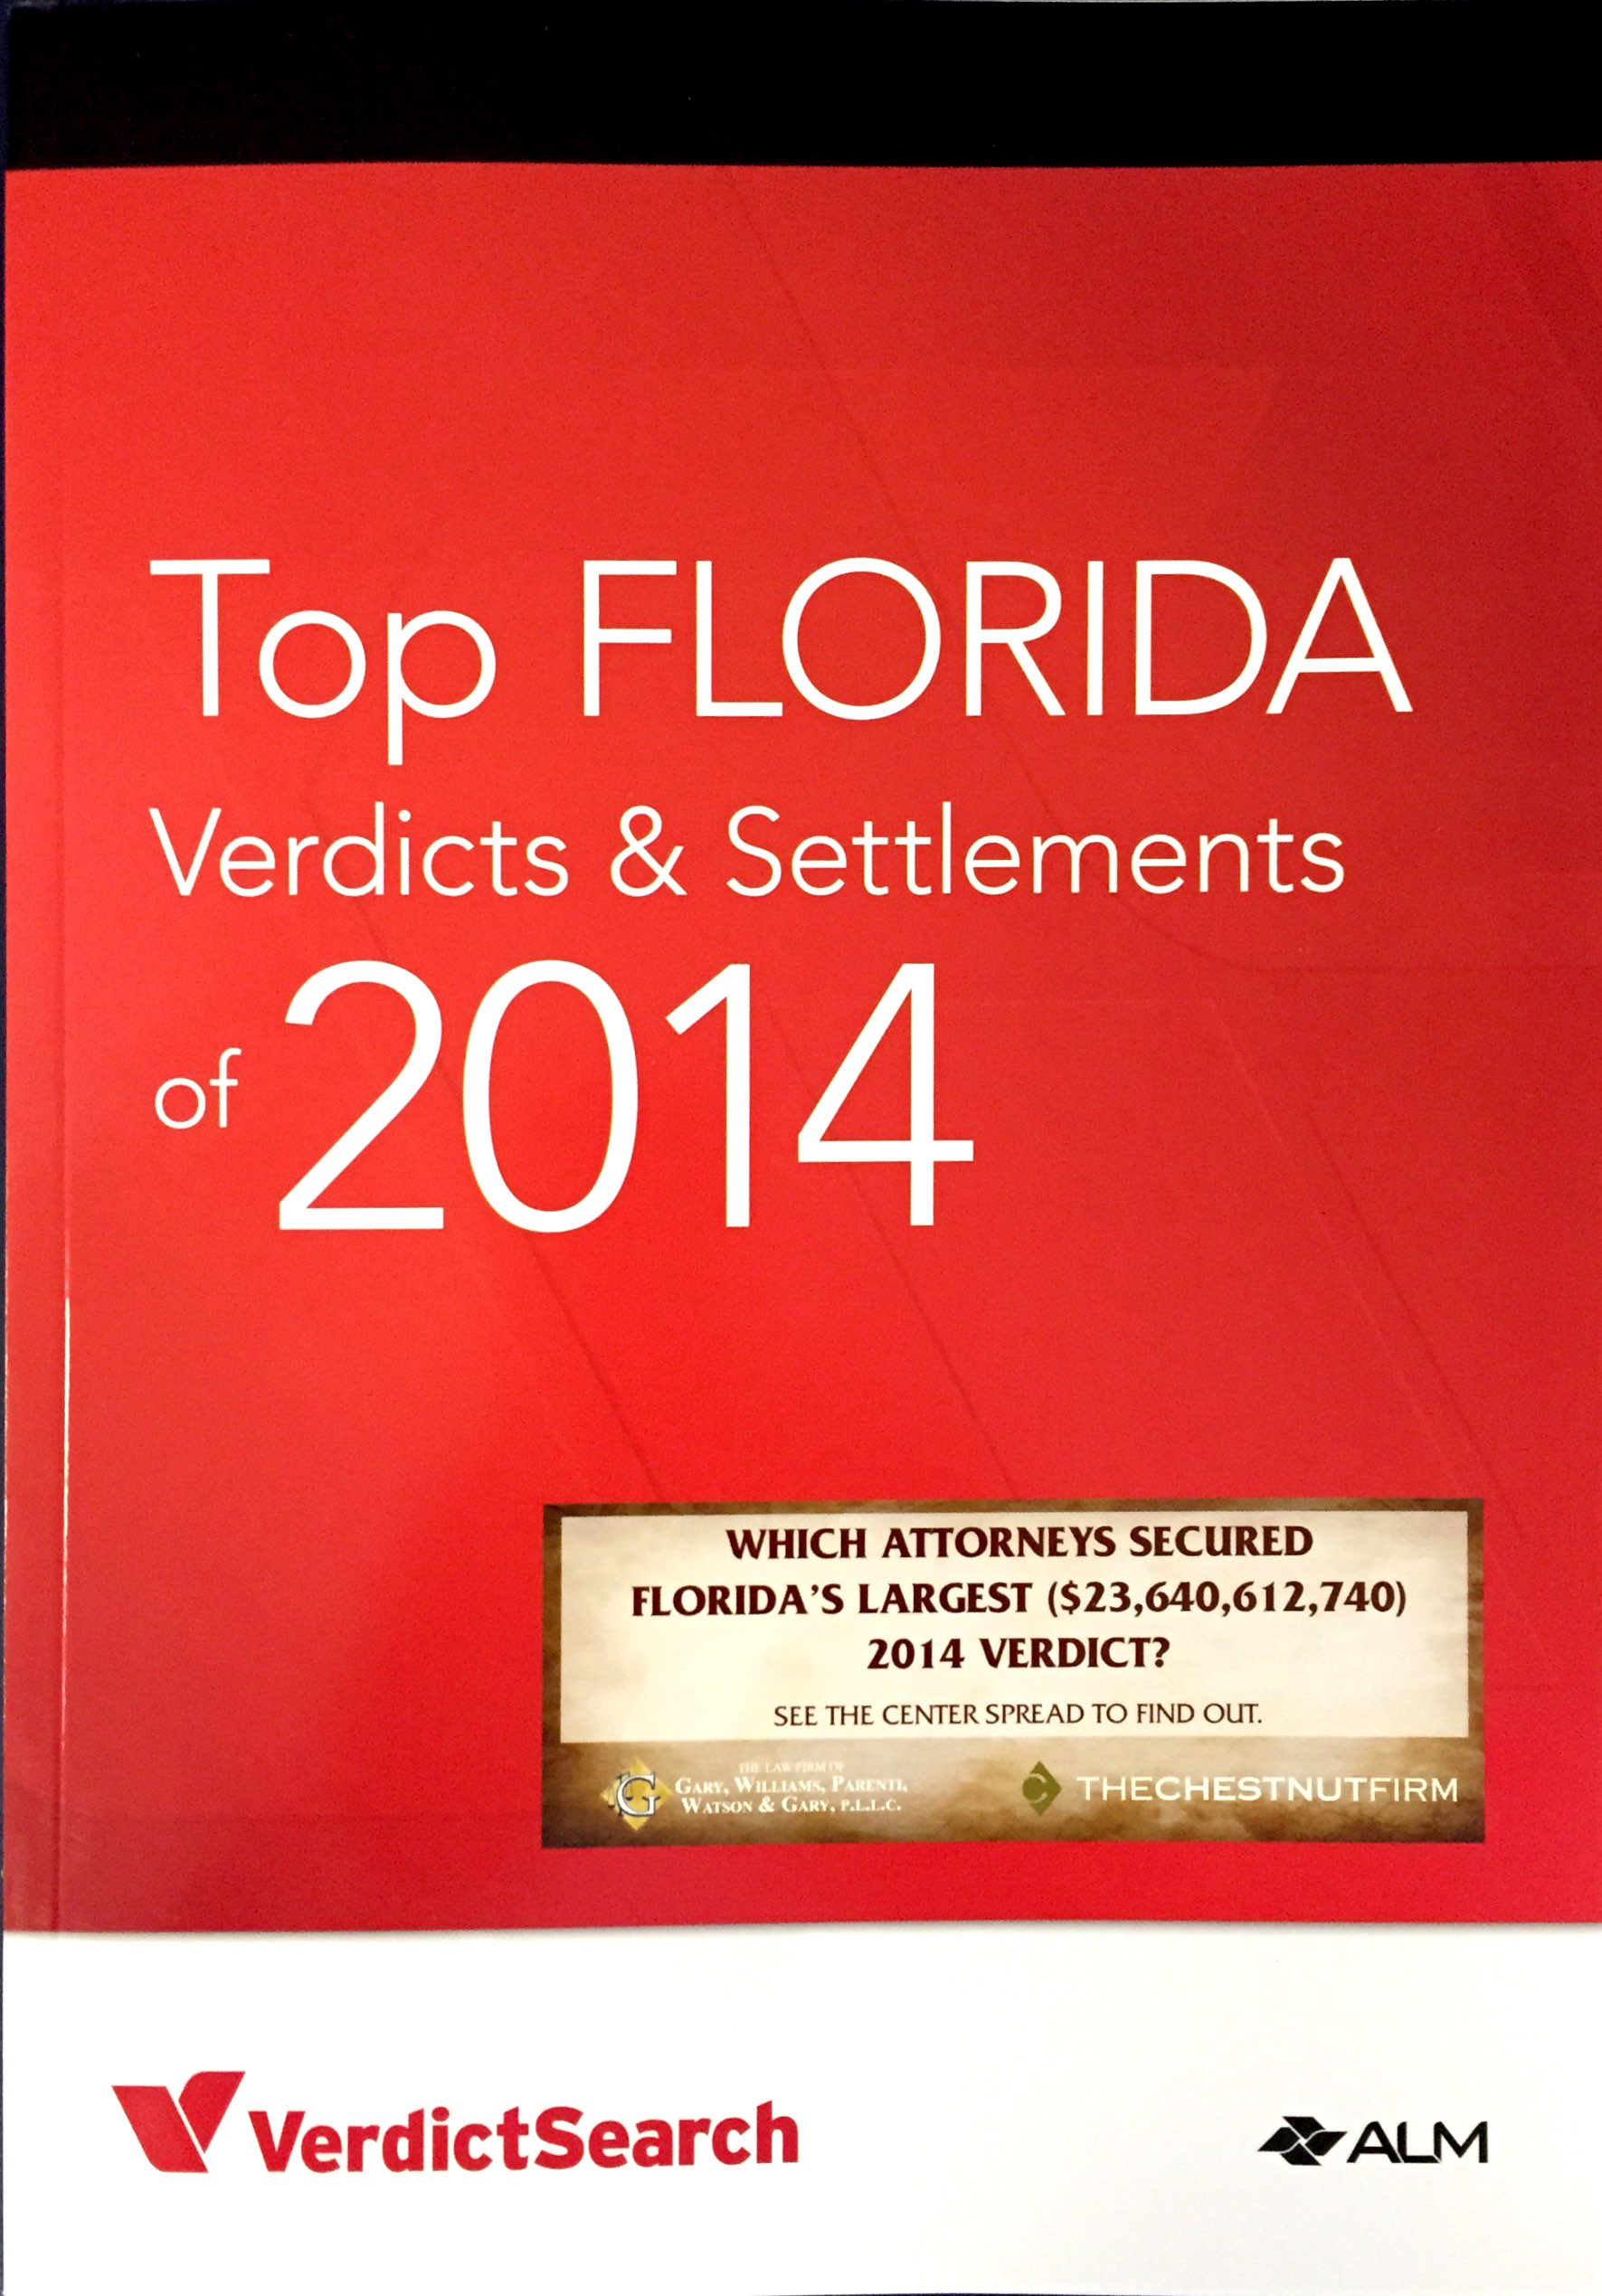 The Altman Law Firm has 2 of the Top Florida Verdicts in